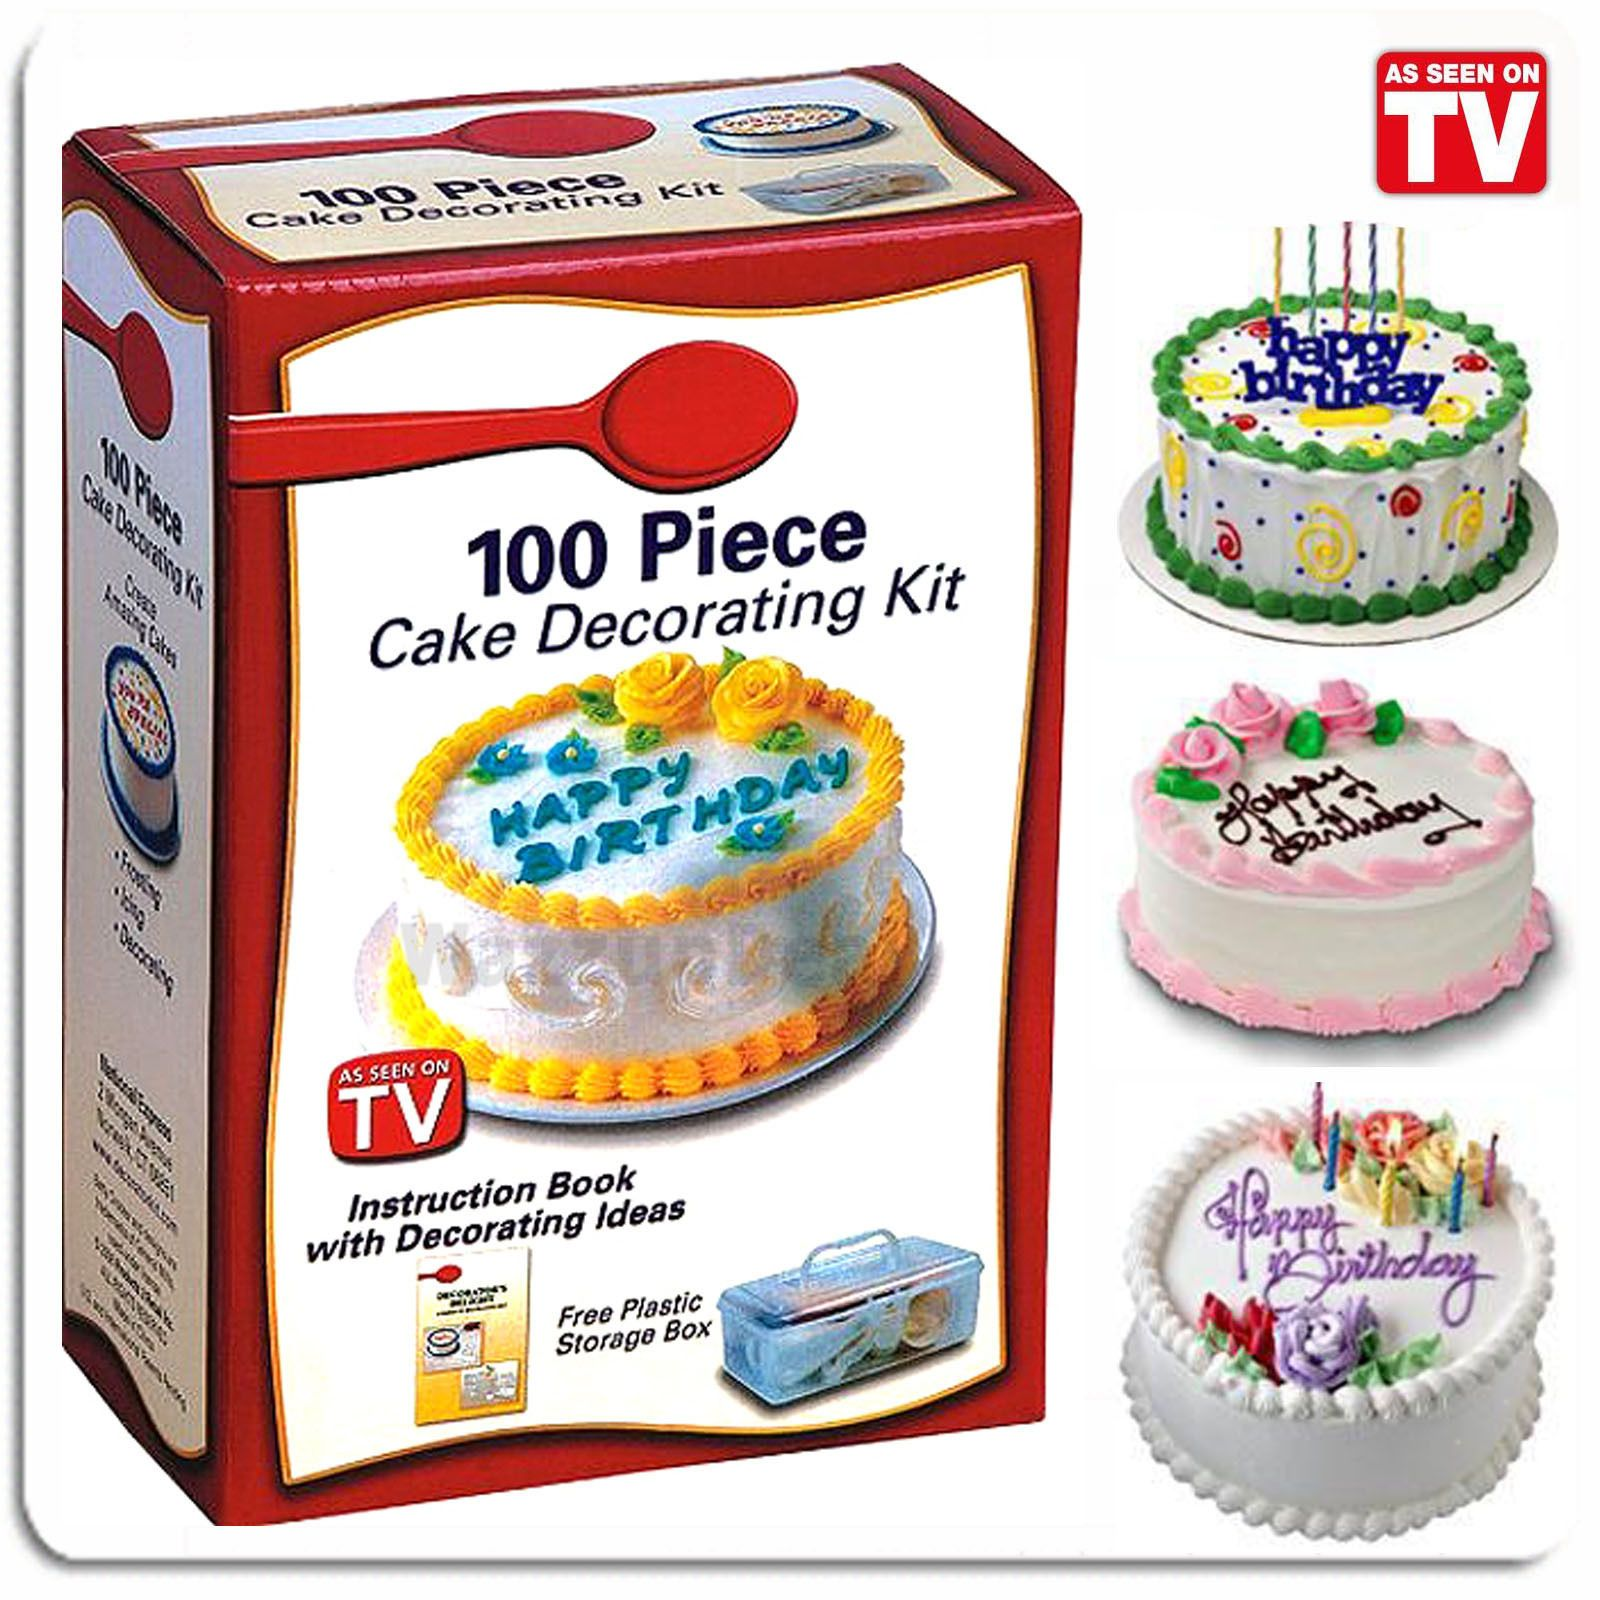 Betty Crocker 100 Piece Cake Decorating Kit Set Diy Nib In A Box